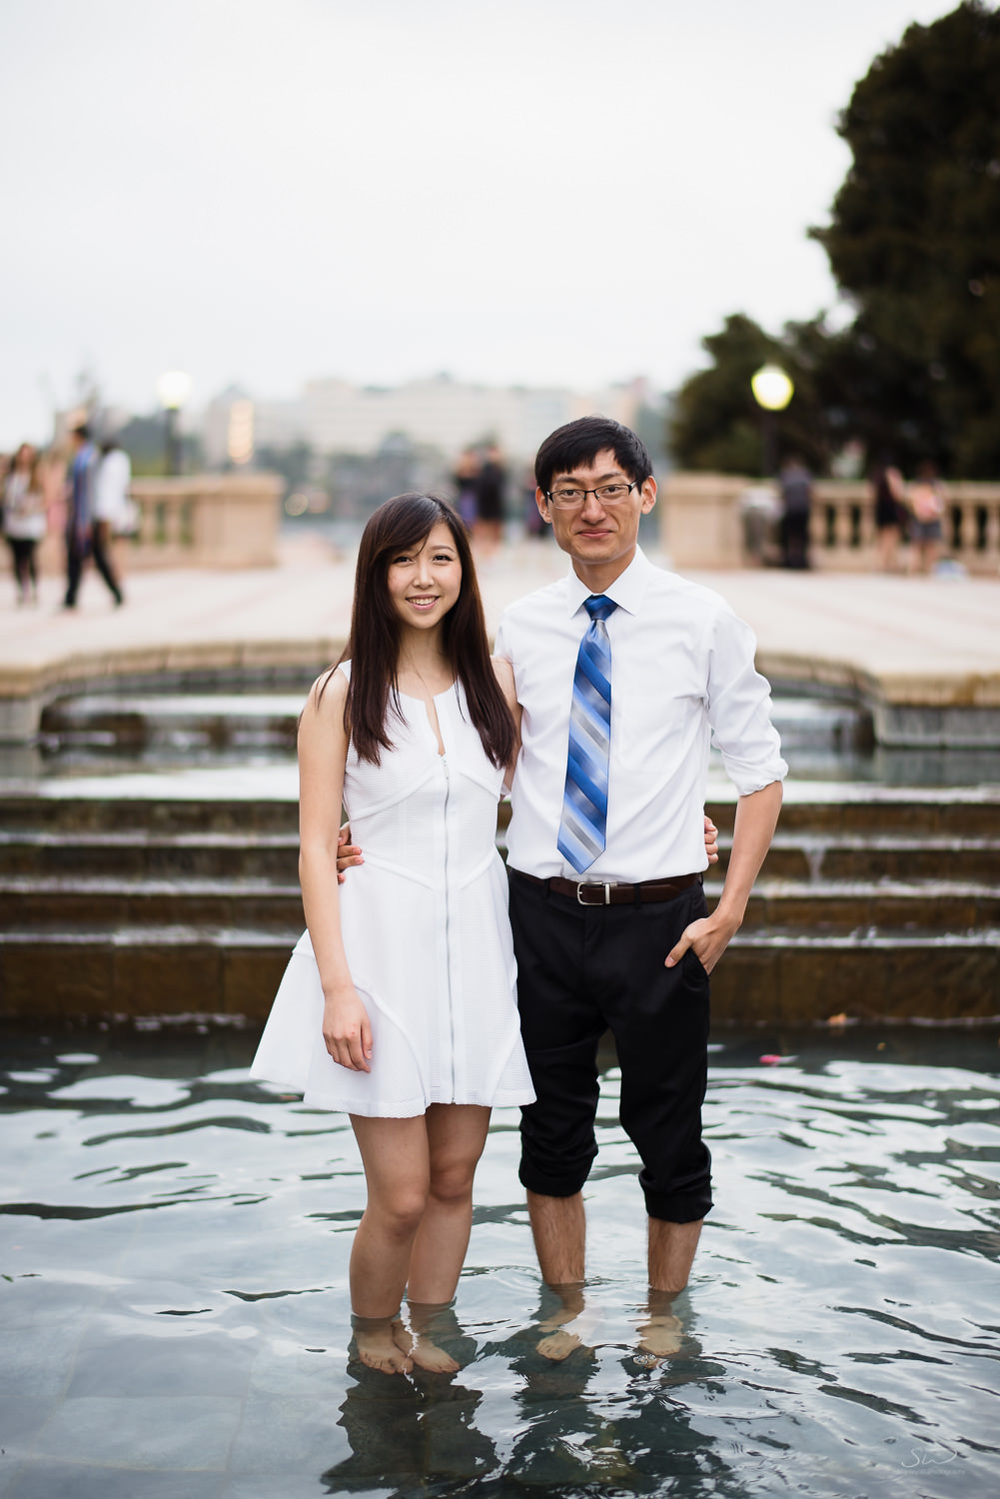 ucla-uc-berkeley-couple-grad-29.jpg